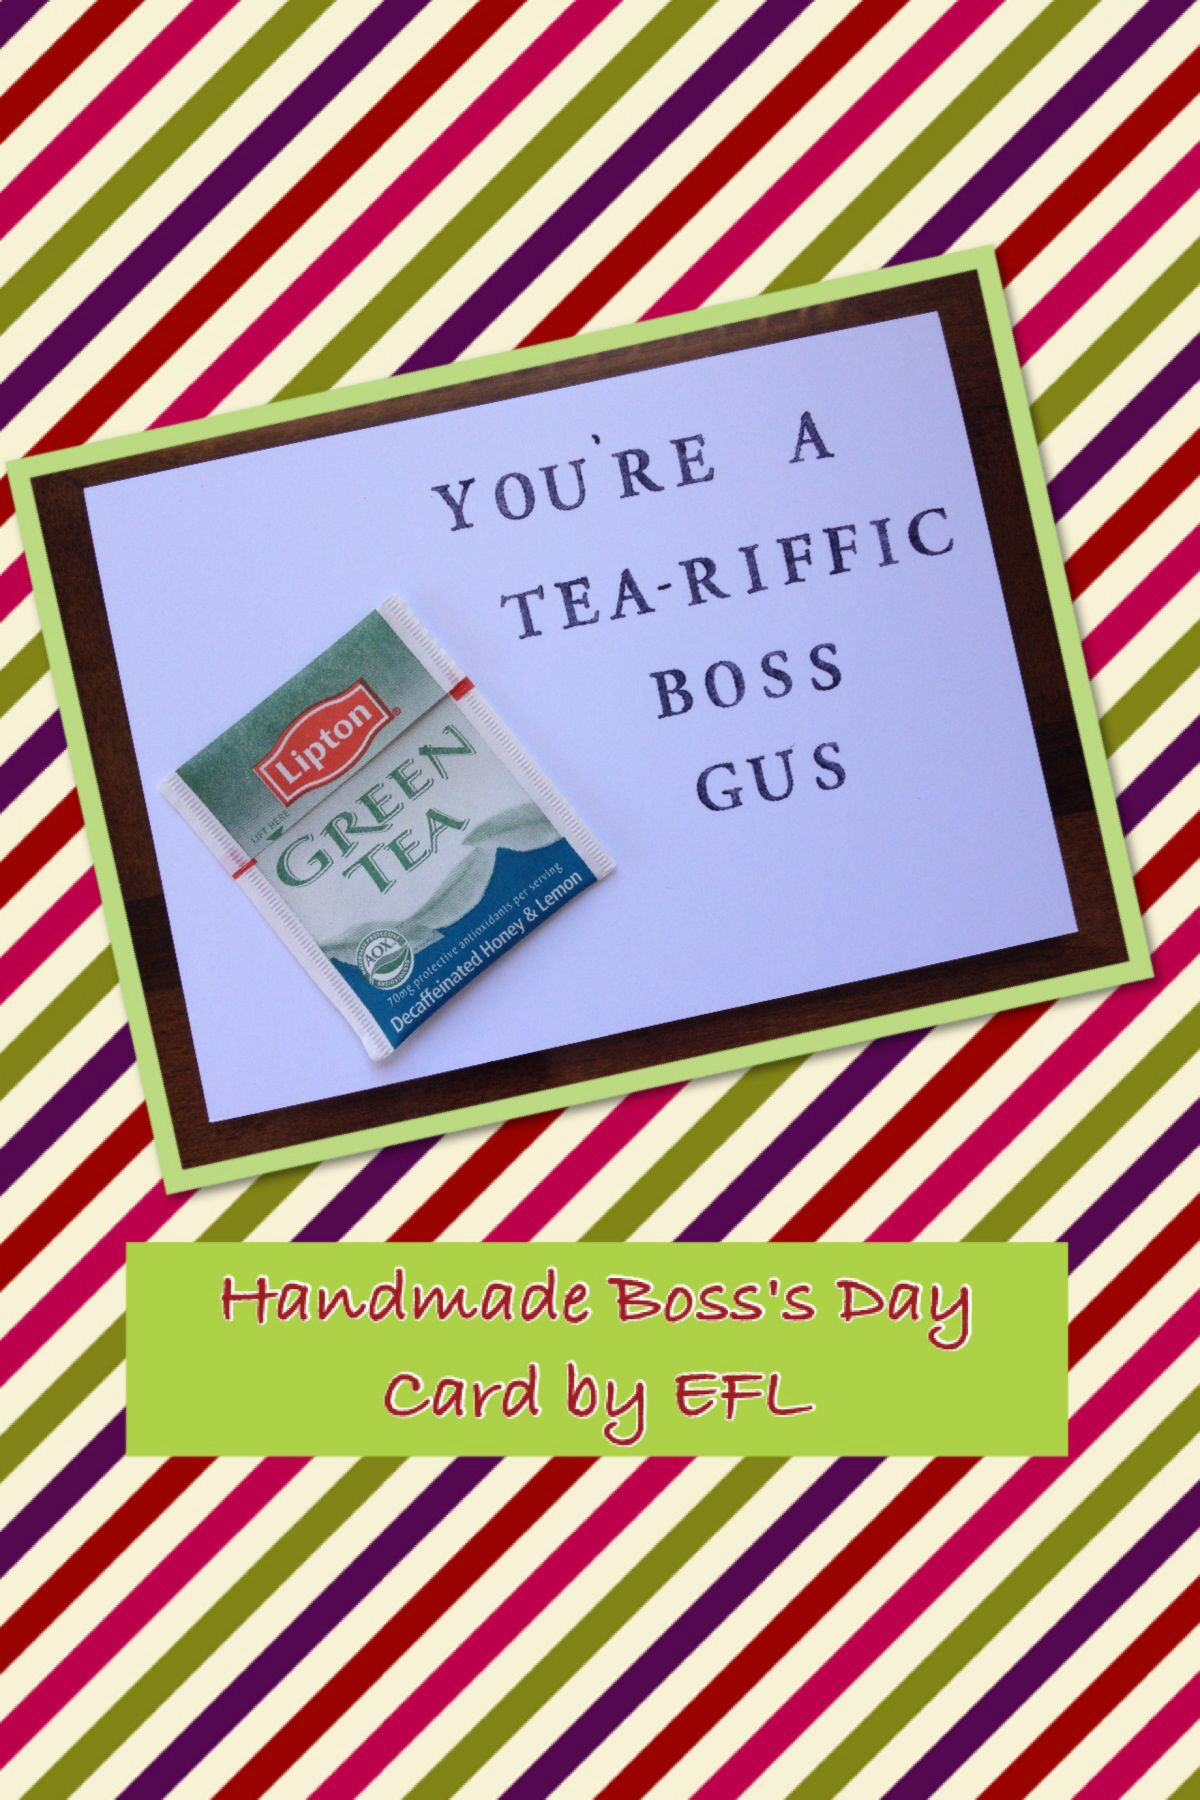 My Handmade Boss's Day Cardefl. | My Homemade Cardsefl - Boss Day Cards Free Printable